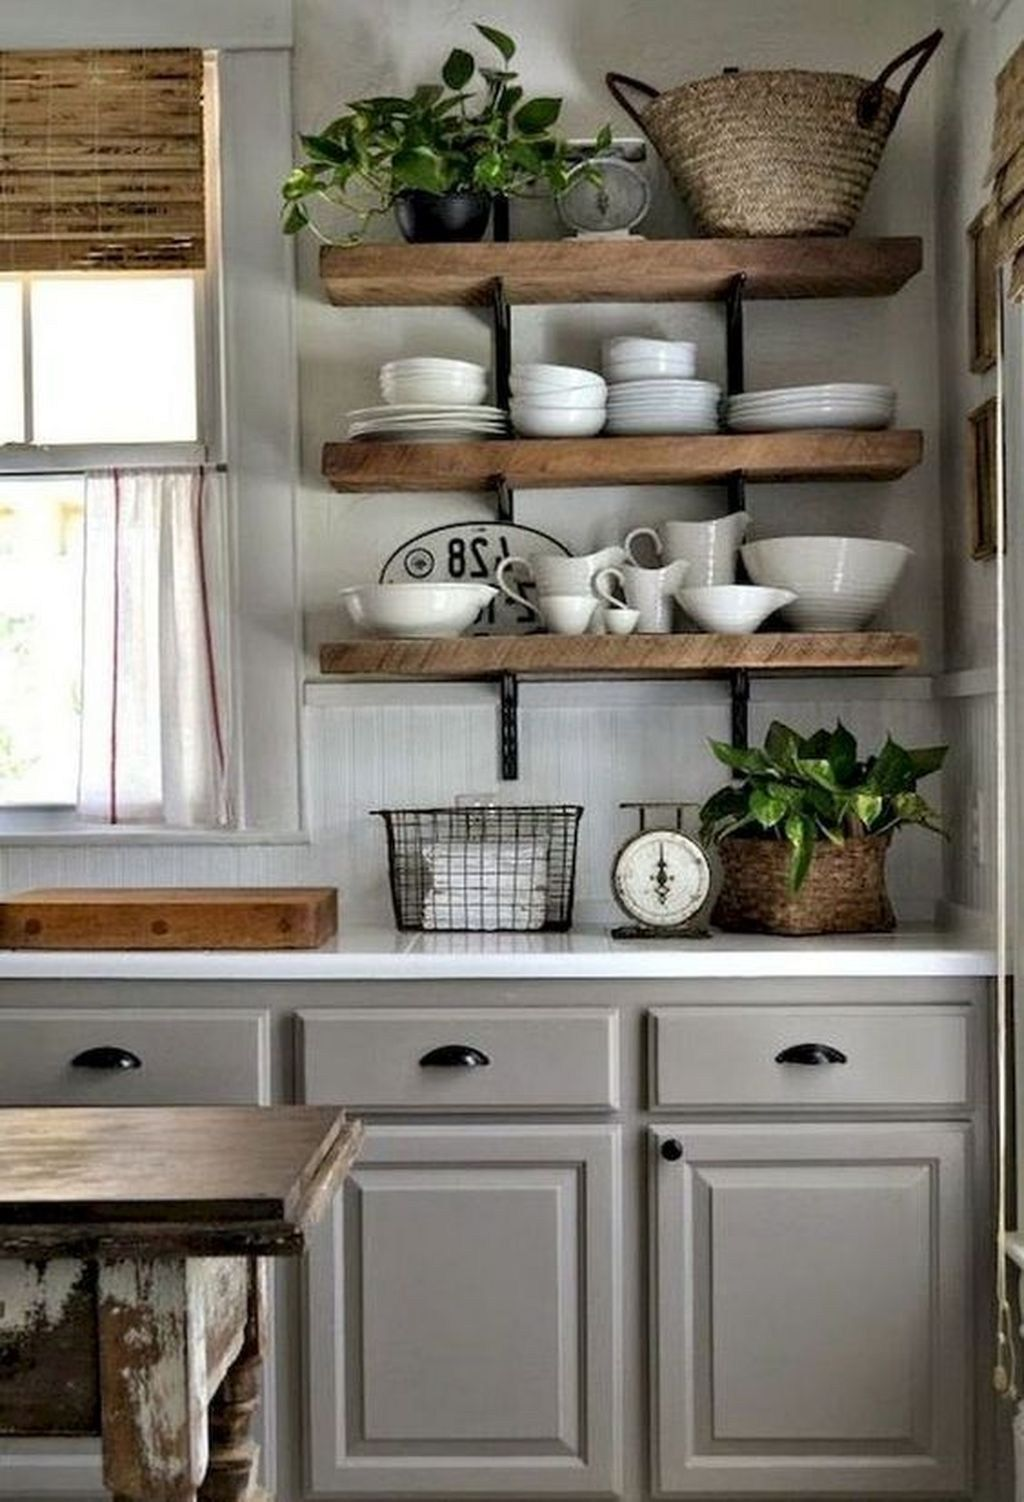 King Size Bed With Storage, 46 Inspiring Rustic Country Kitchen Ideas To Renew Your Ordinary Kitchen Trendehouse Country Kitchen Decor Rustic Country Kitchens Farmhouse Kitchen Decor